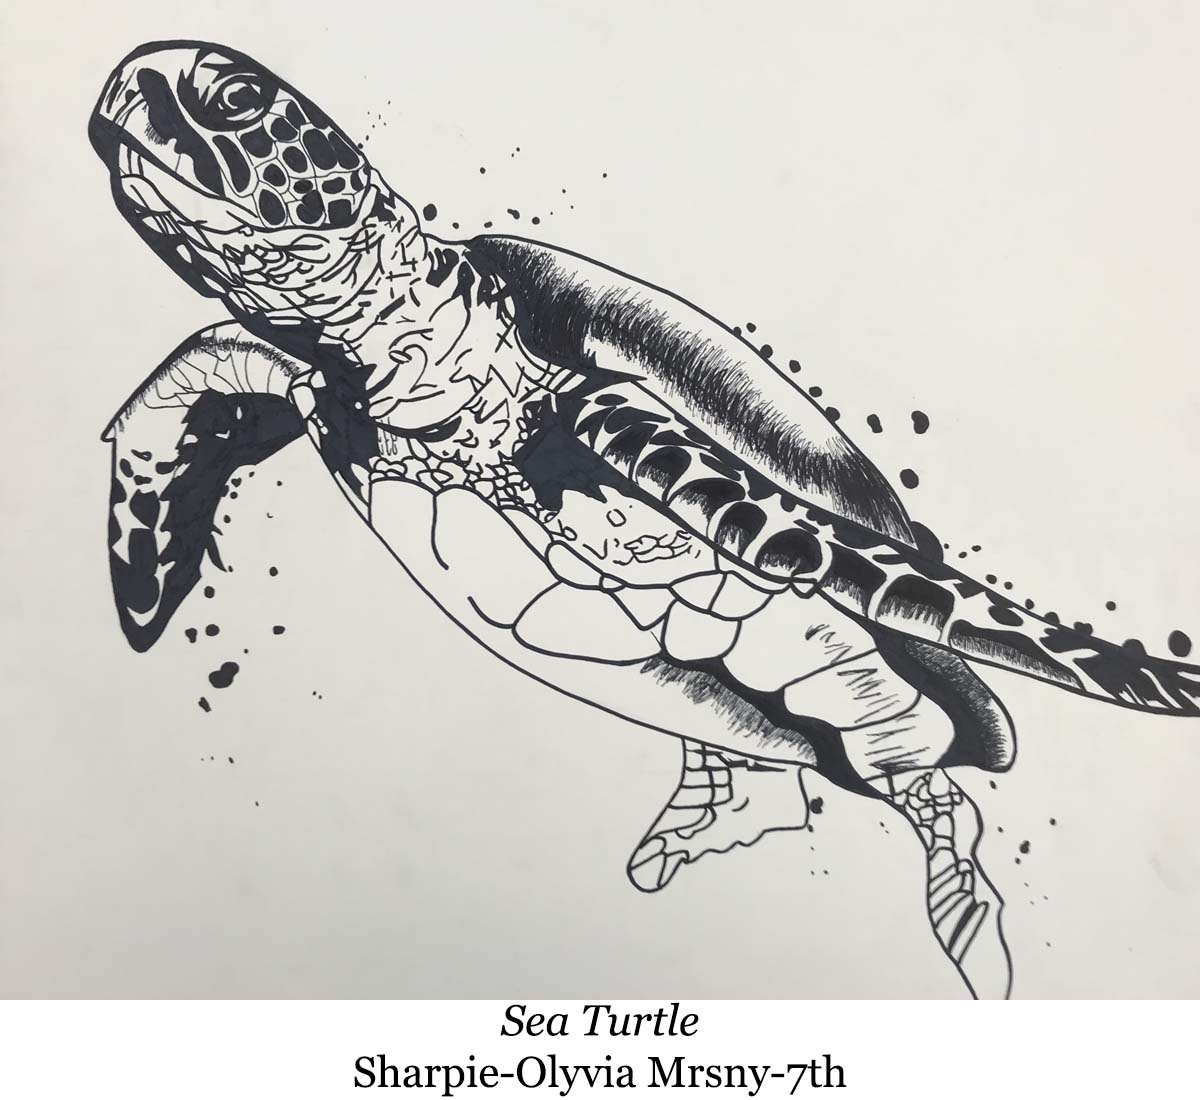 1588002938-sea_turtle-sharpie-olyvia_mrsny-7th